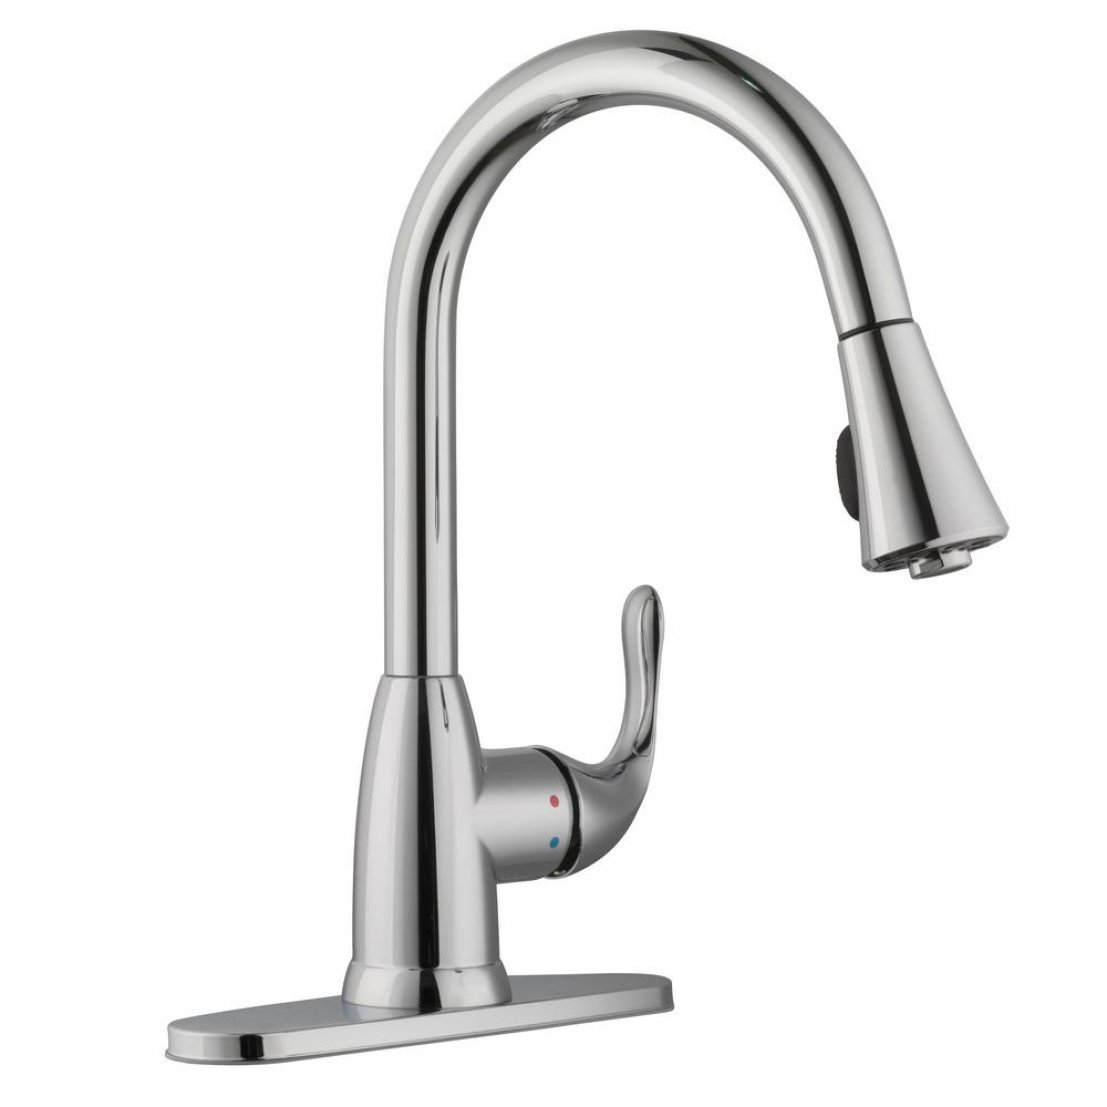 Glacier Bay HD67551-0301 Market Single-Handle Pull-Down Sprayer Faucet, Chrome by Glacier Bay